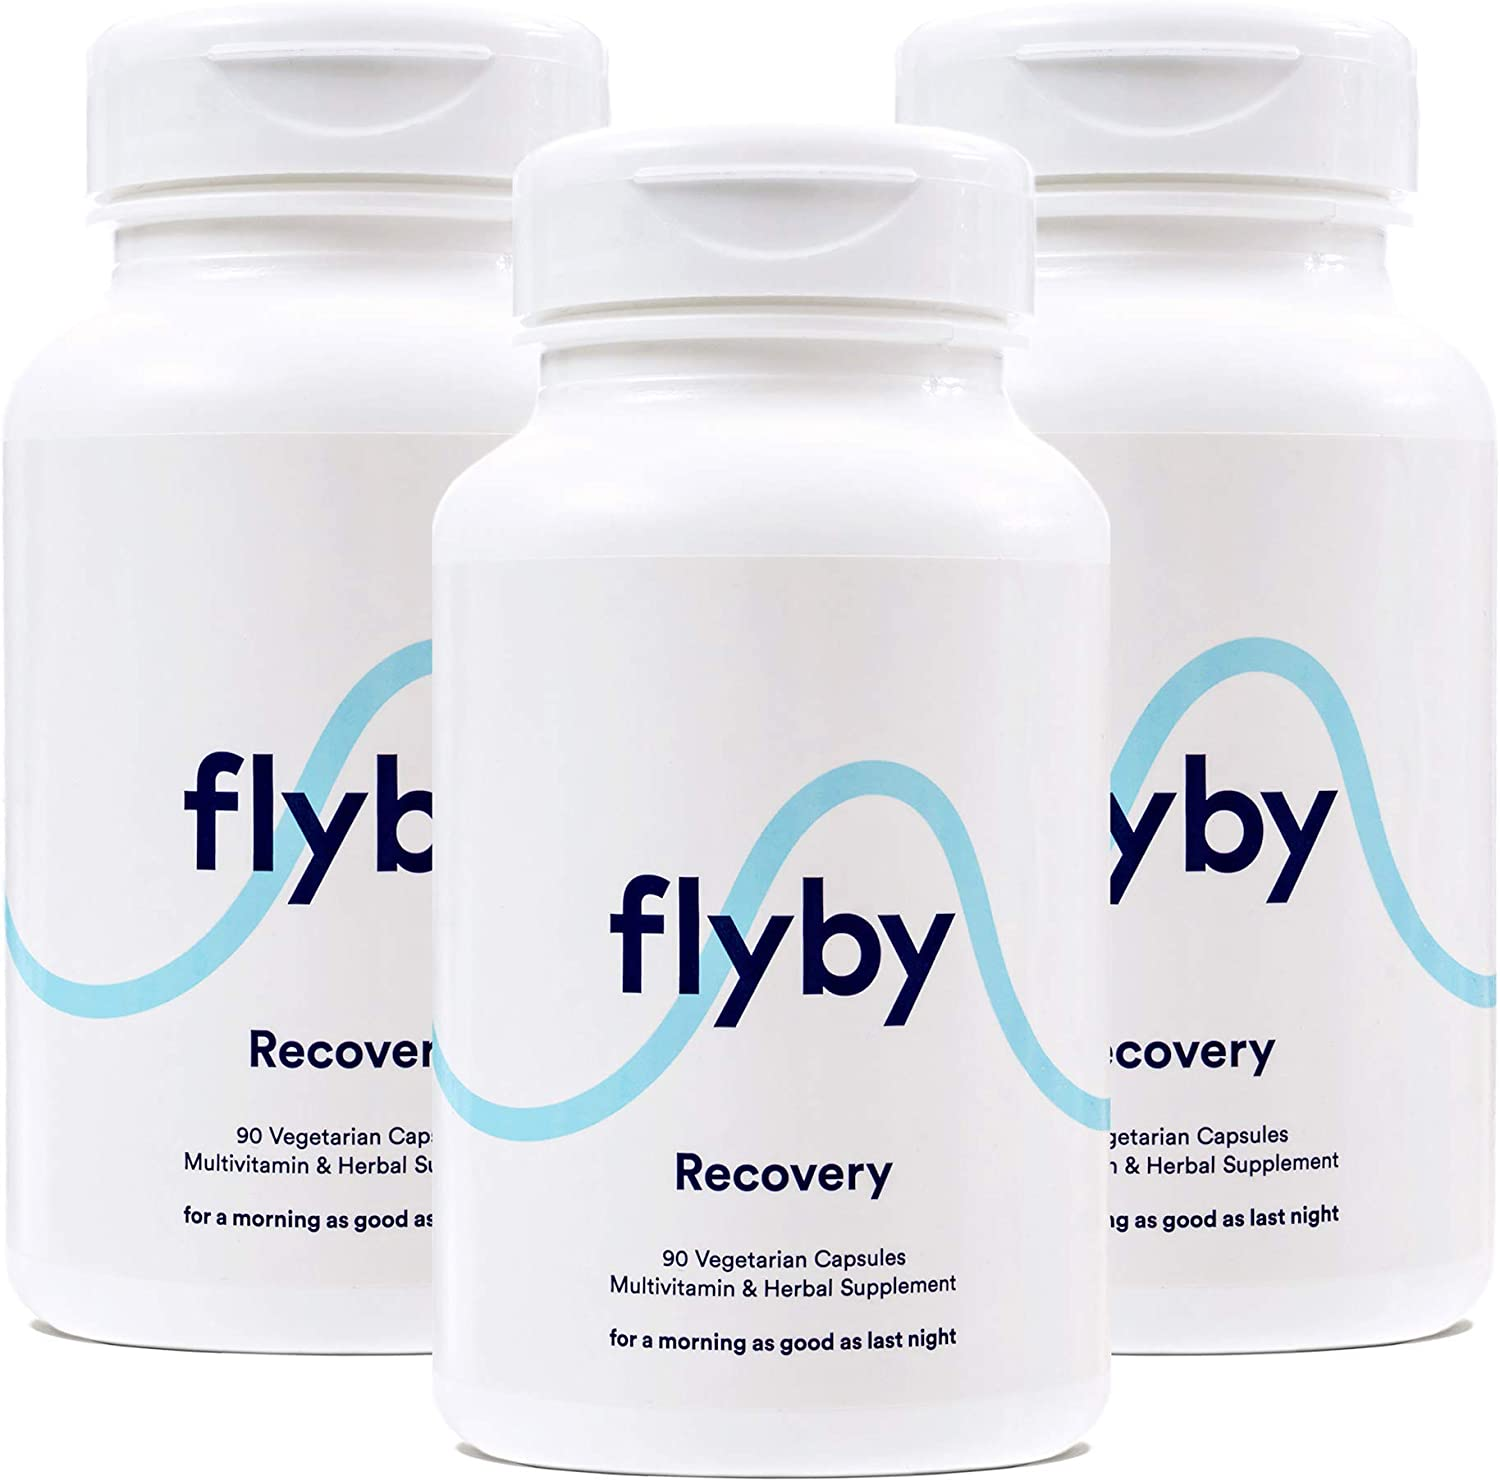 Flyby Hangover Cure Prevention Pills 270 Capsules – Dihydromyricetin DHM , N-Acetyl-Cysteine, Chlorophyll, Prickly Pear, Milk Thistle for Morning After Alcohol Recovery – Certified Organic